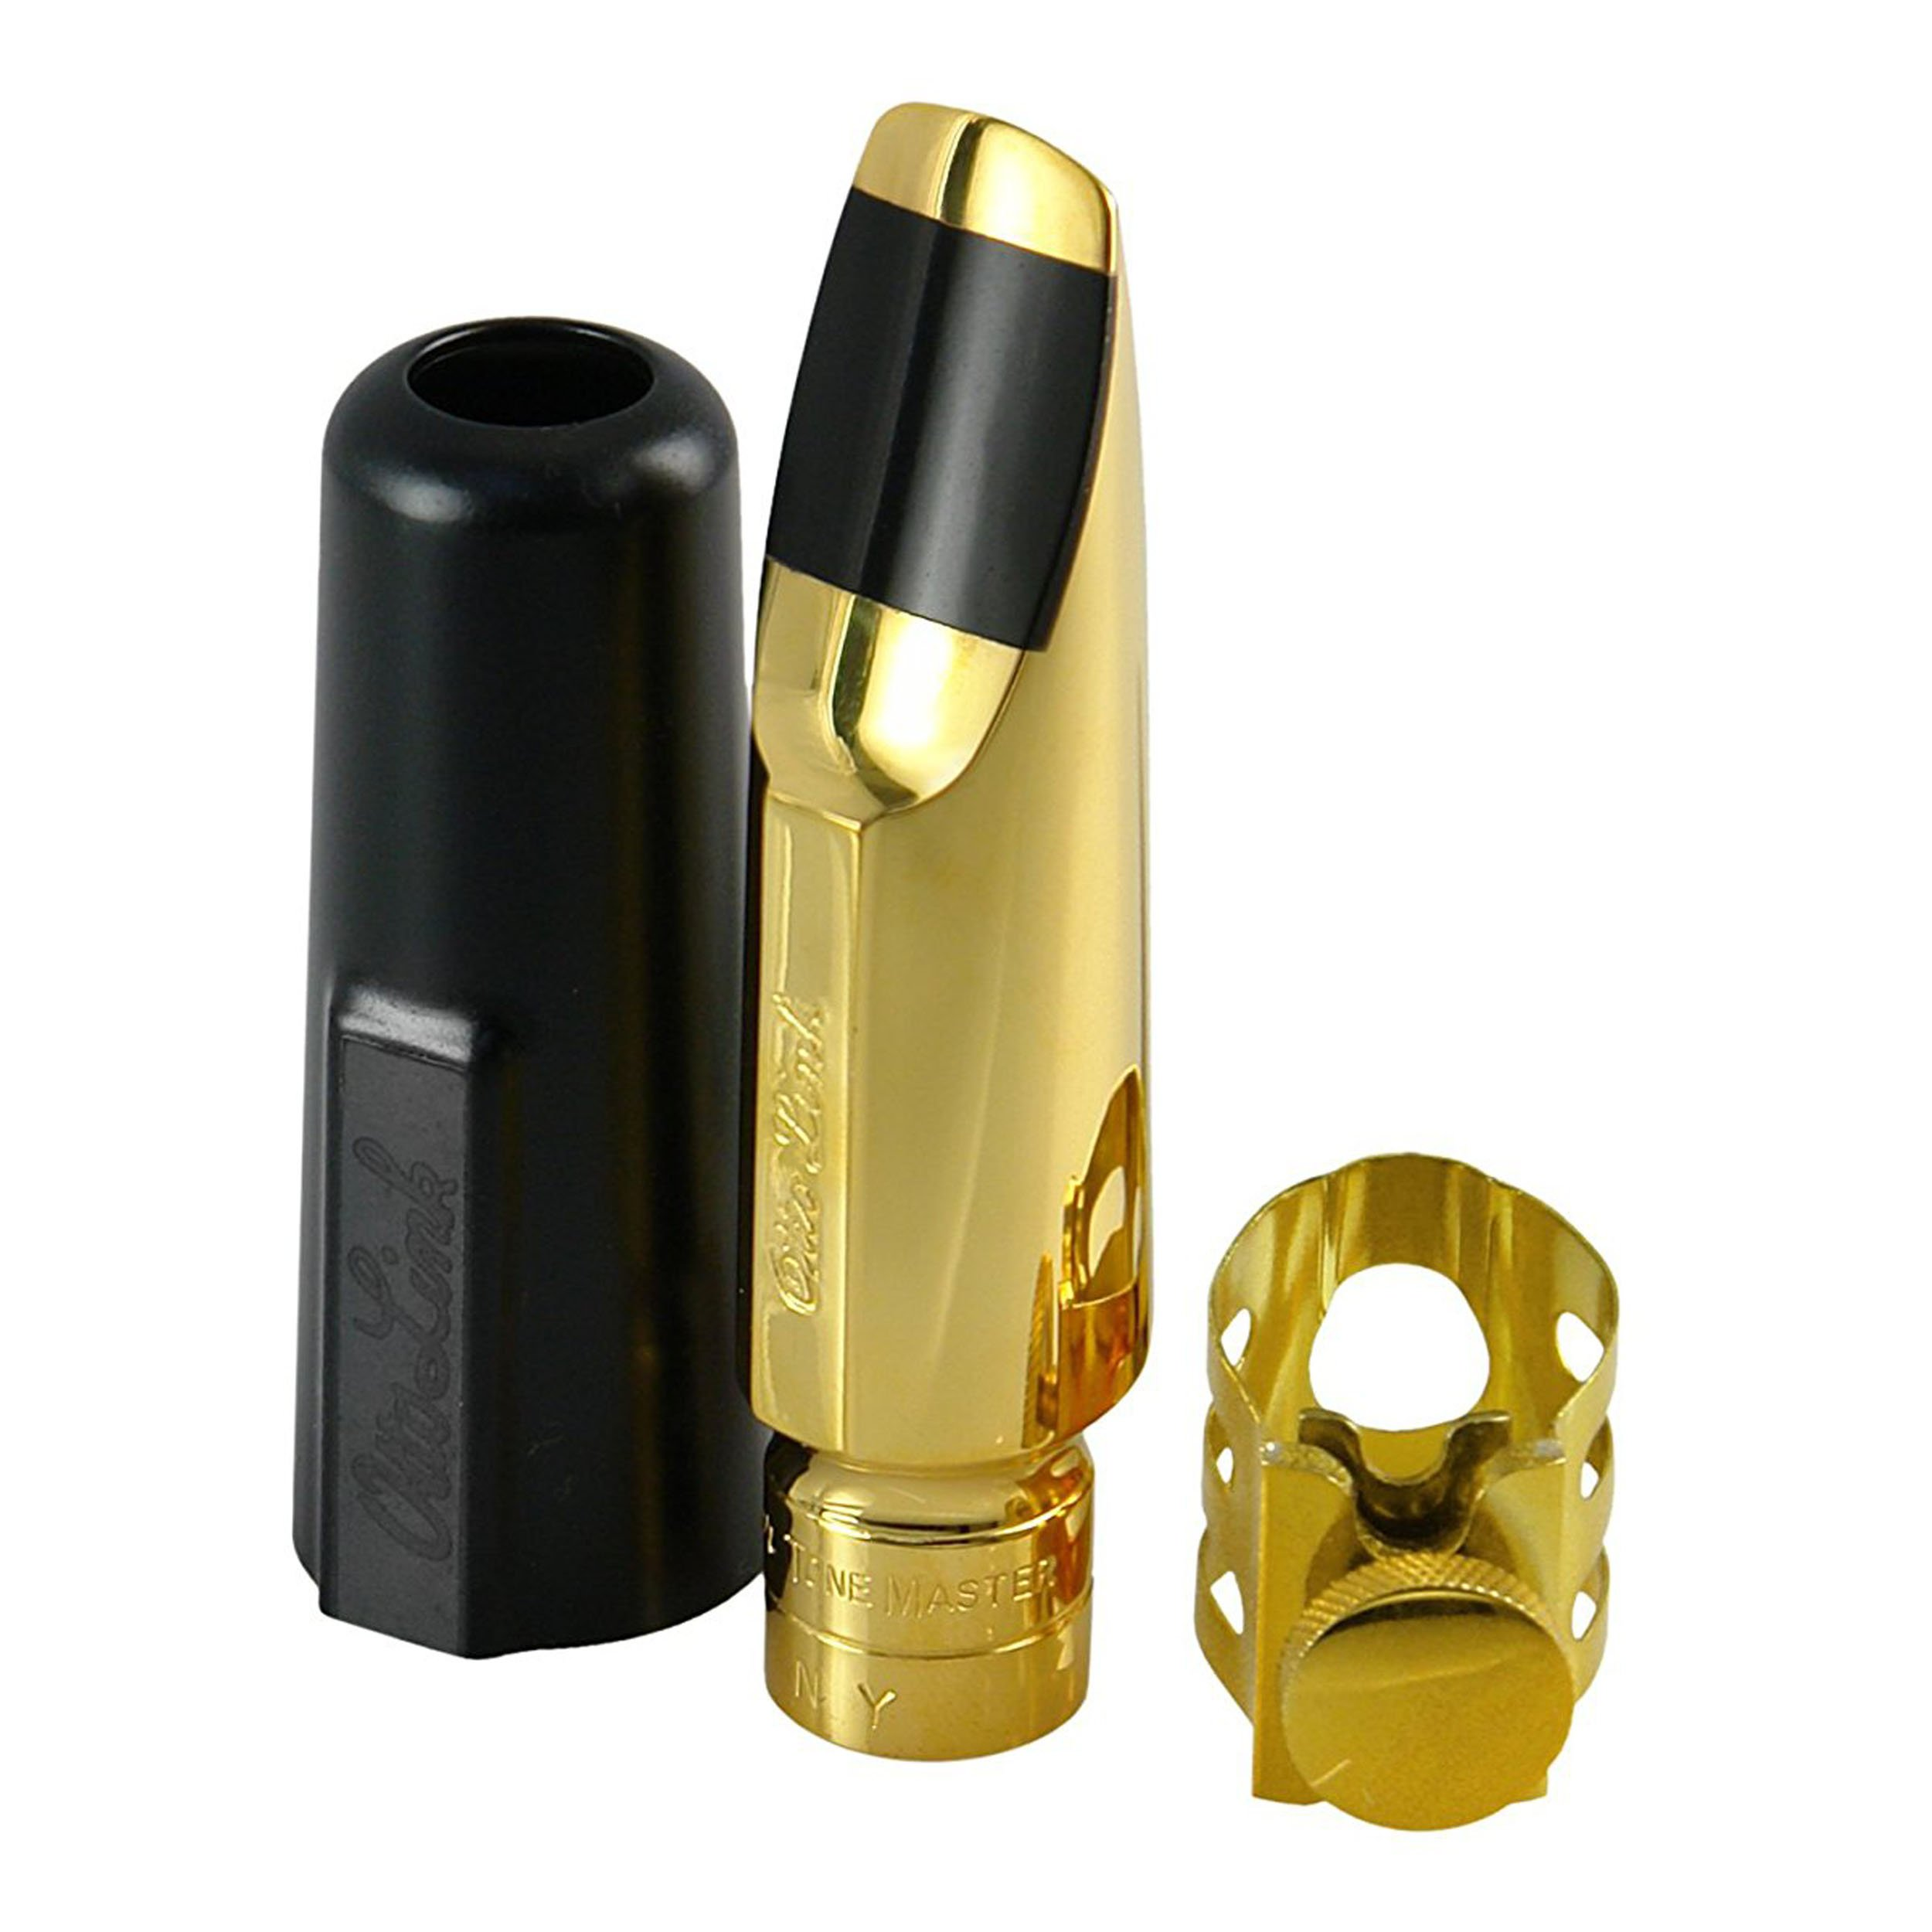 Ottolink OLMTSNY61 Metal New York Tenor Saxophone Mouthpiece, 6# Size